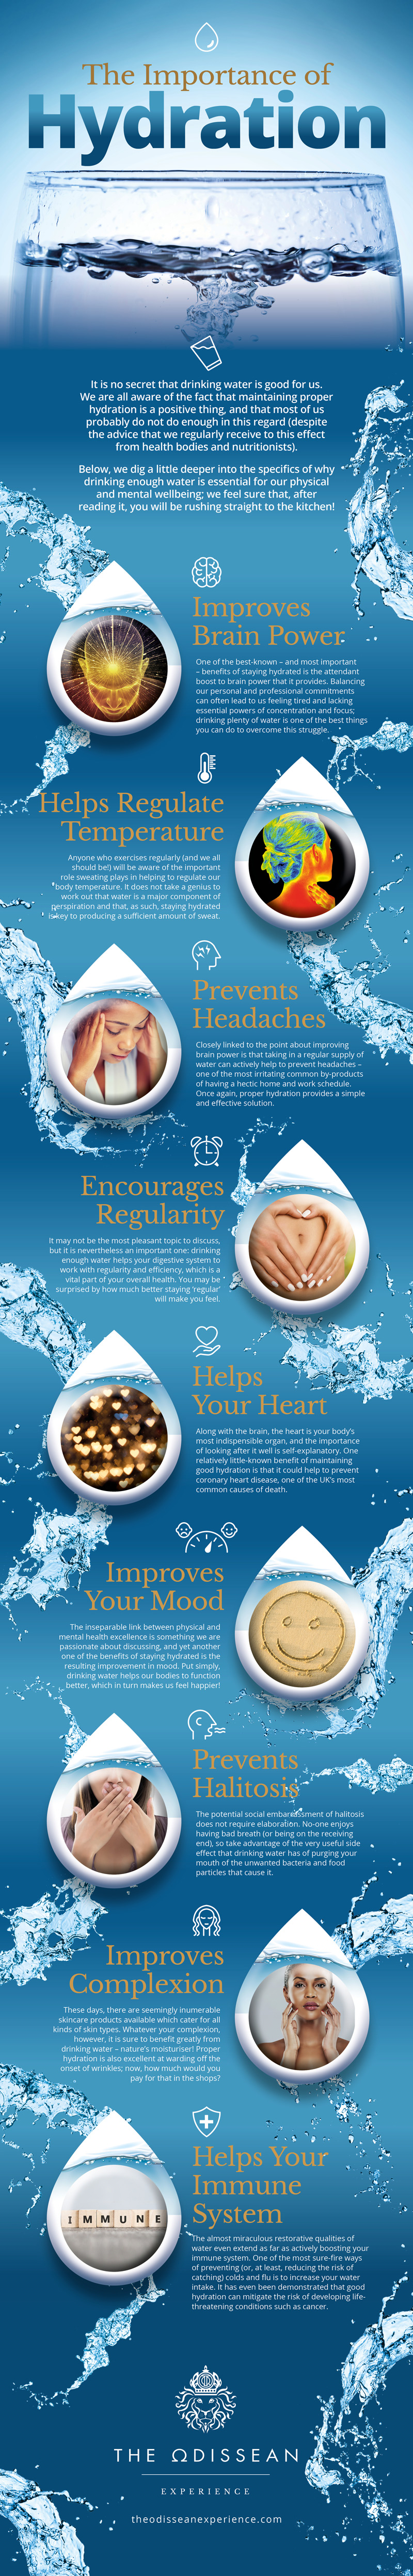 The Importance of Hydration - infographic